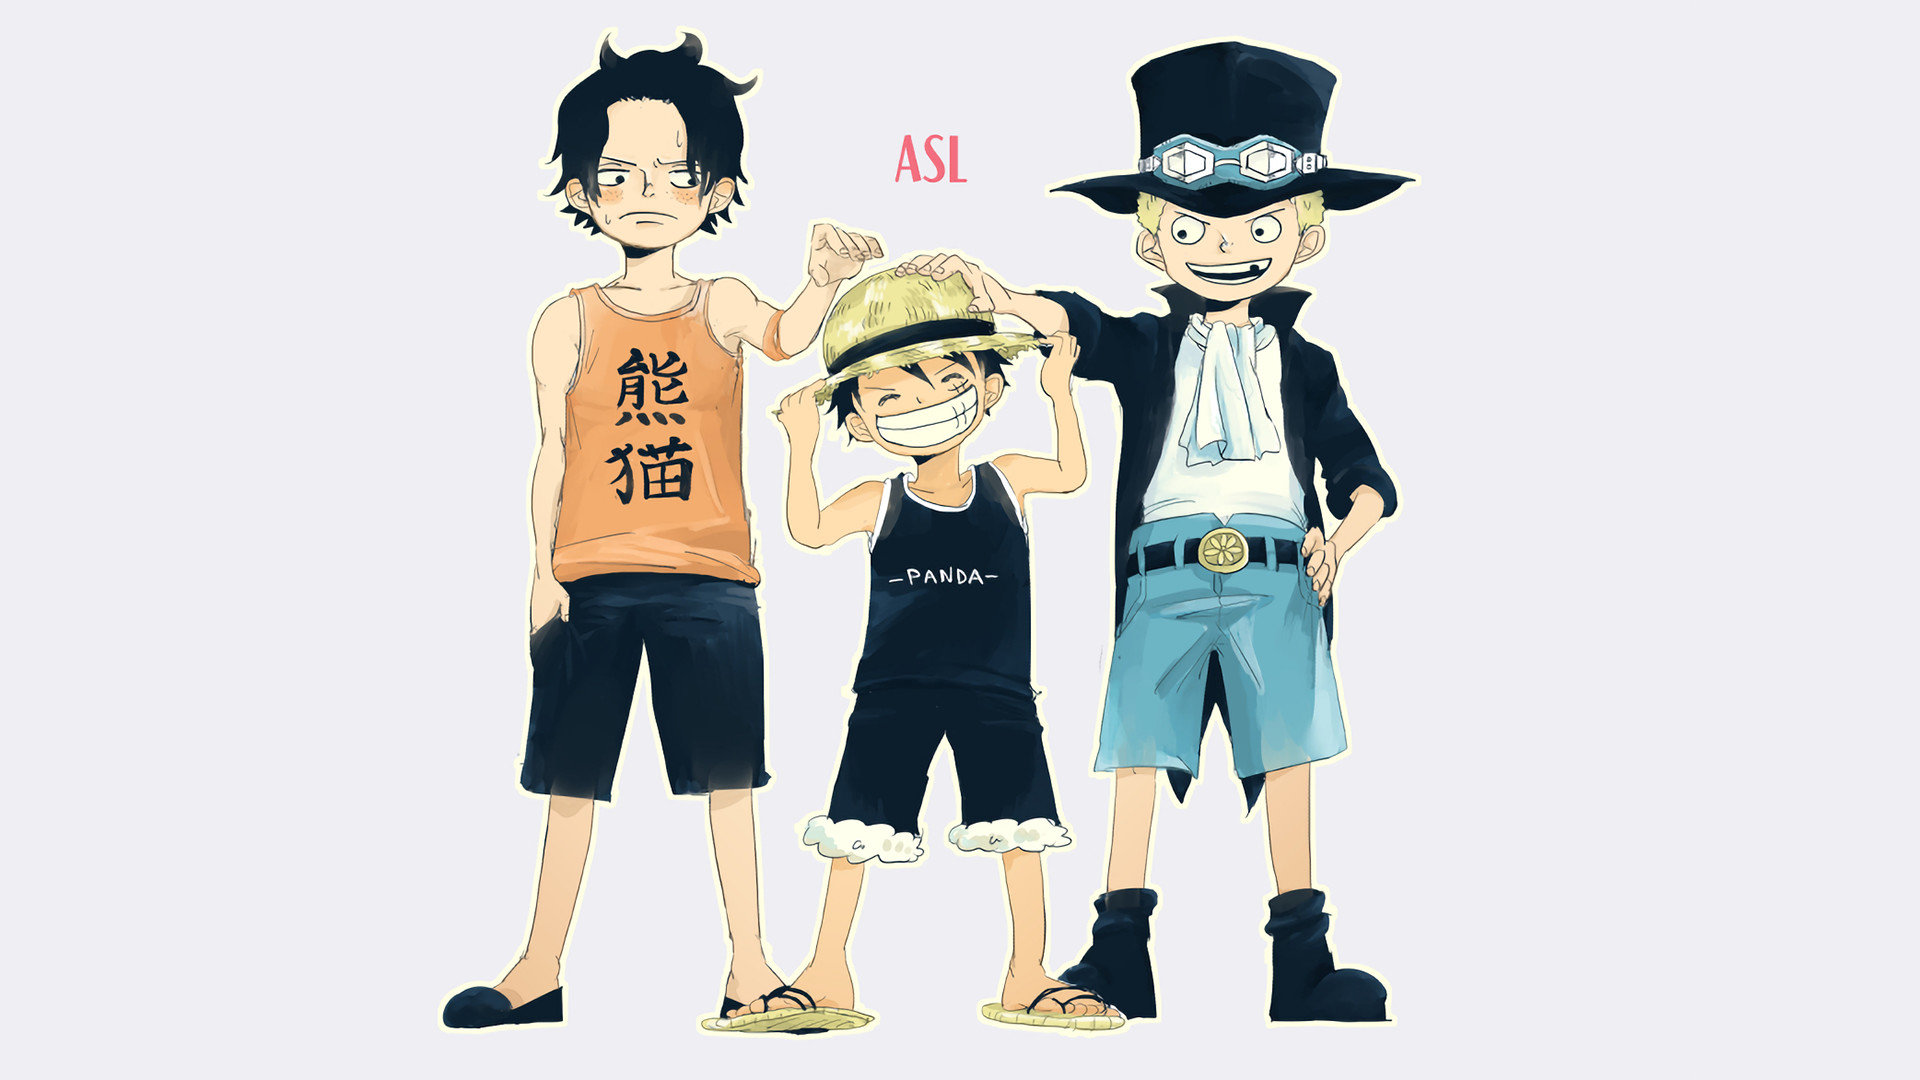 sabo  one piece  wallpapers 1920x1080 full hd  1080p  desktop backgrounds